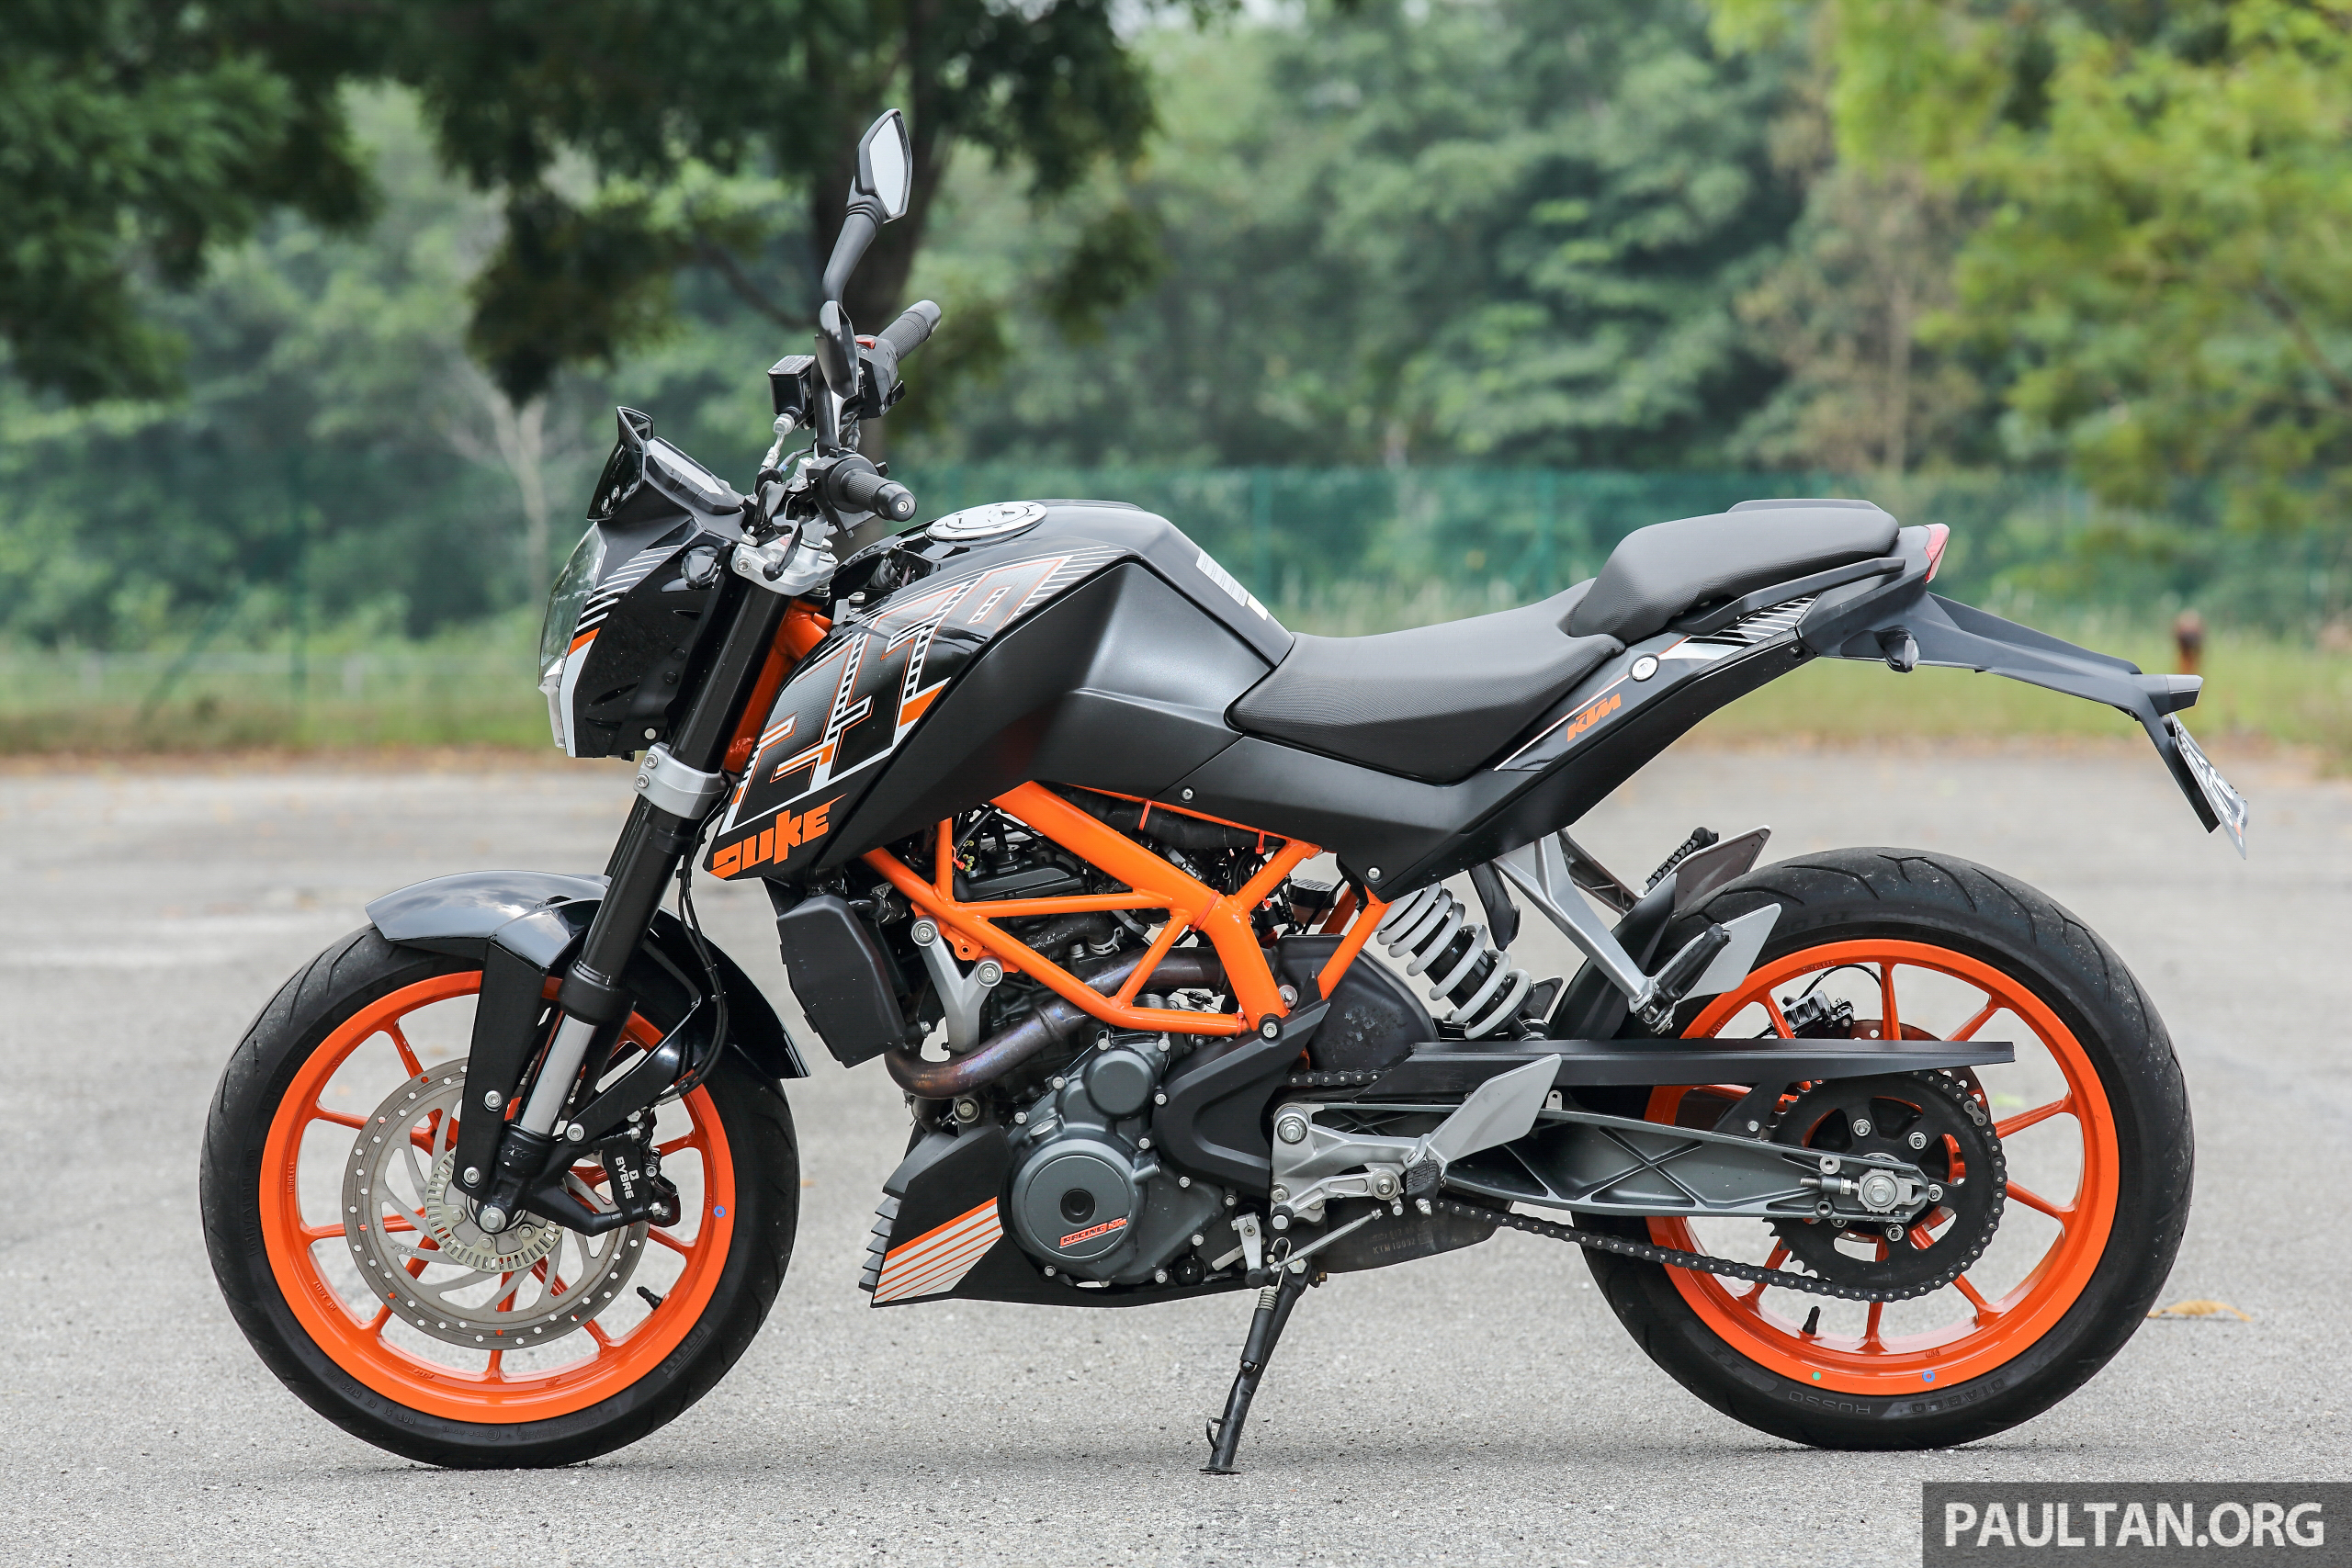 price of rc cars with Ktm Duke250 08 on Trolls together with Foldable furthermore 2018 Lexus Nx Revealed Australian Debut Next Year 200t Badge Dropped besides Bluetooth Hifi Mp3 Player likewise Dakimakura cover 003.